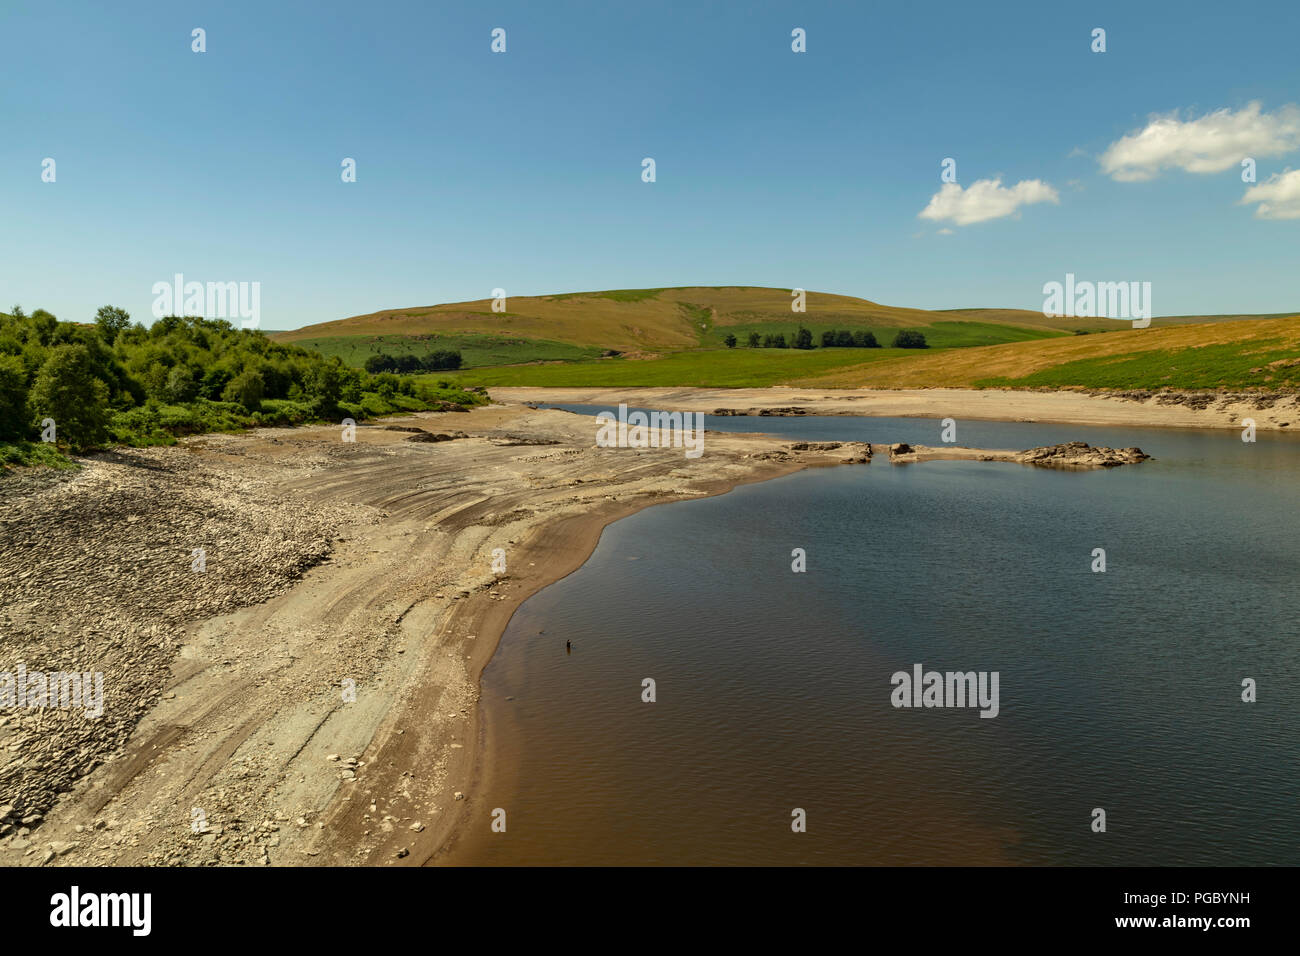 Craig Goch Dam/Reservoir in the Elan Vally, low water level during heatrwave/summer 2018. You could actually walk to the centre of the reservoir. Old  - Stock Image